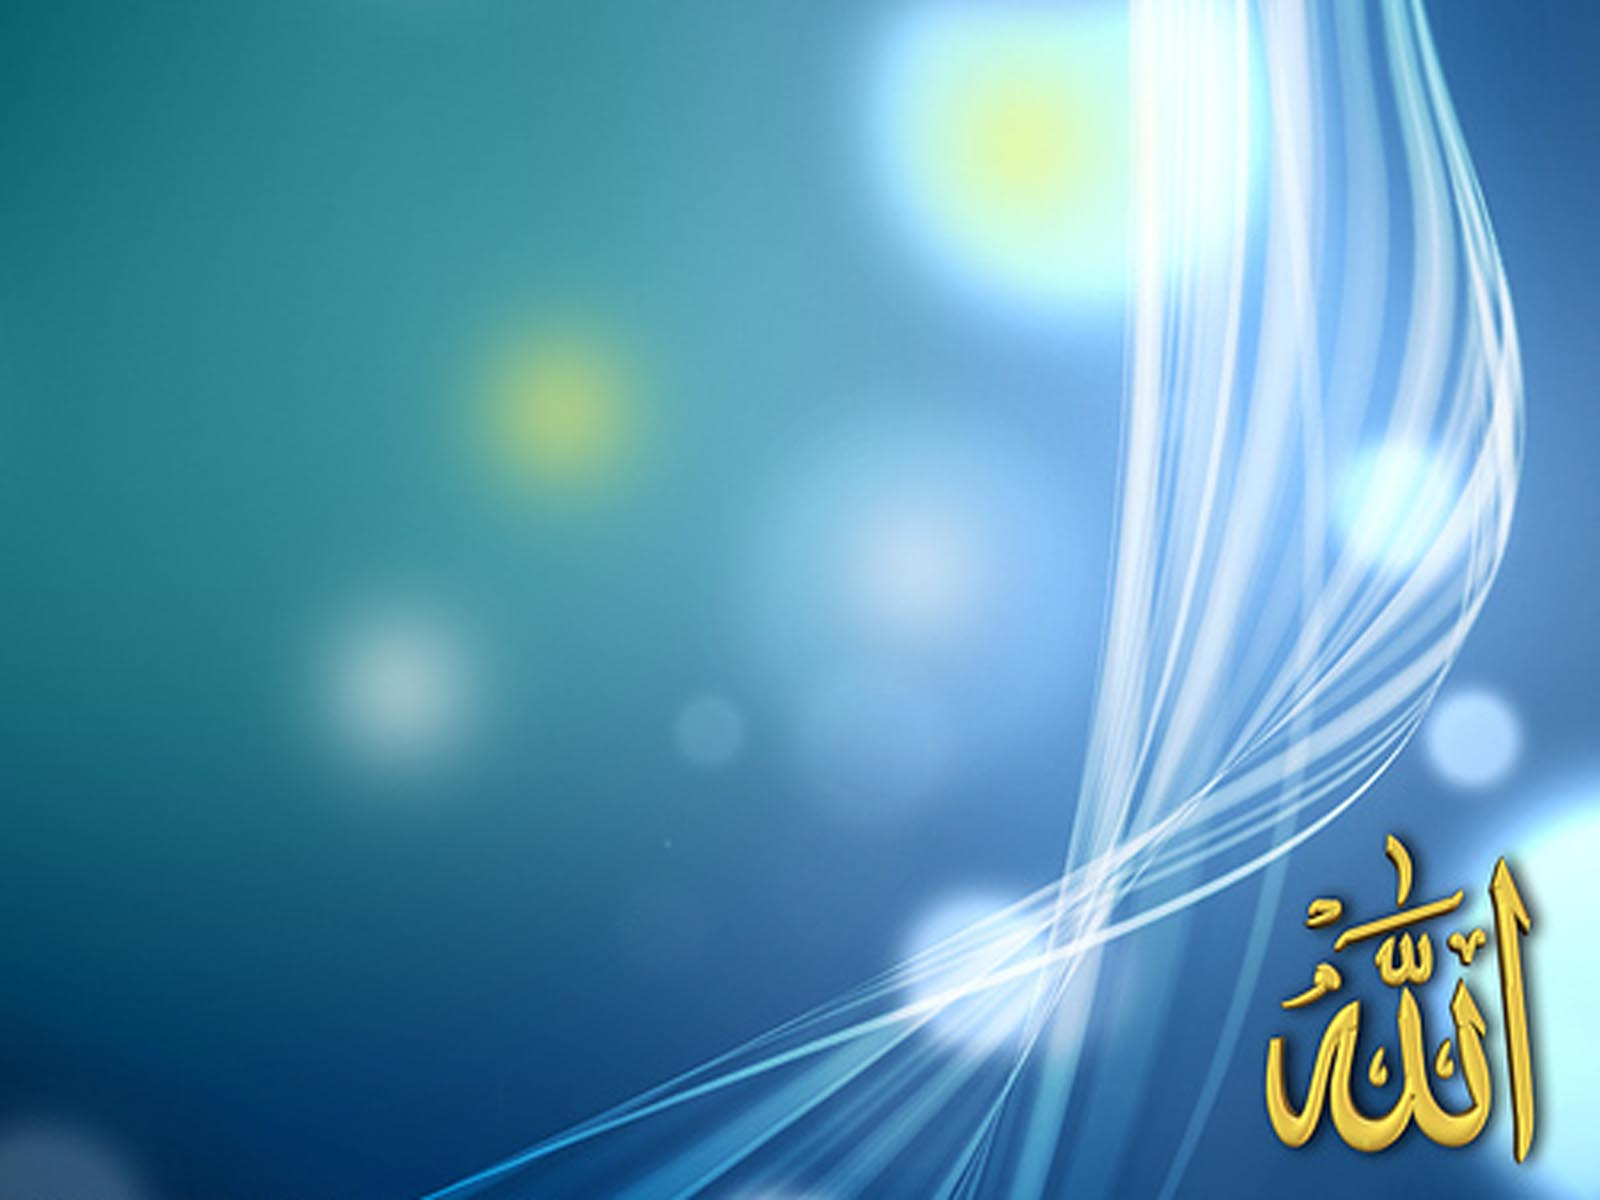 Islamic wallpapers allahalll name wallpapers - A and s name wallpaper ...